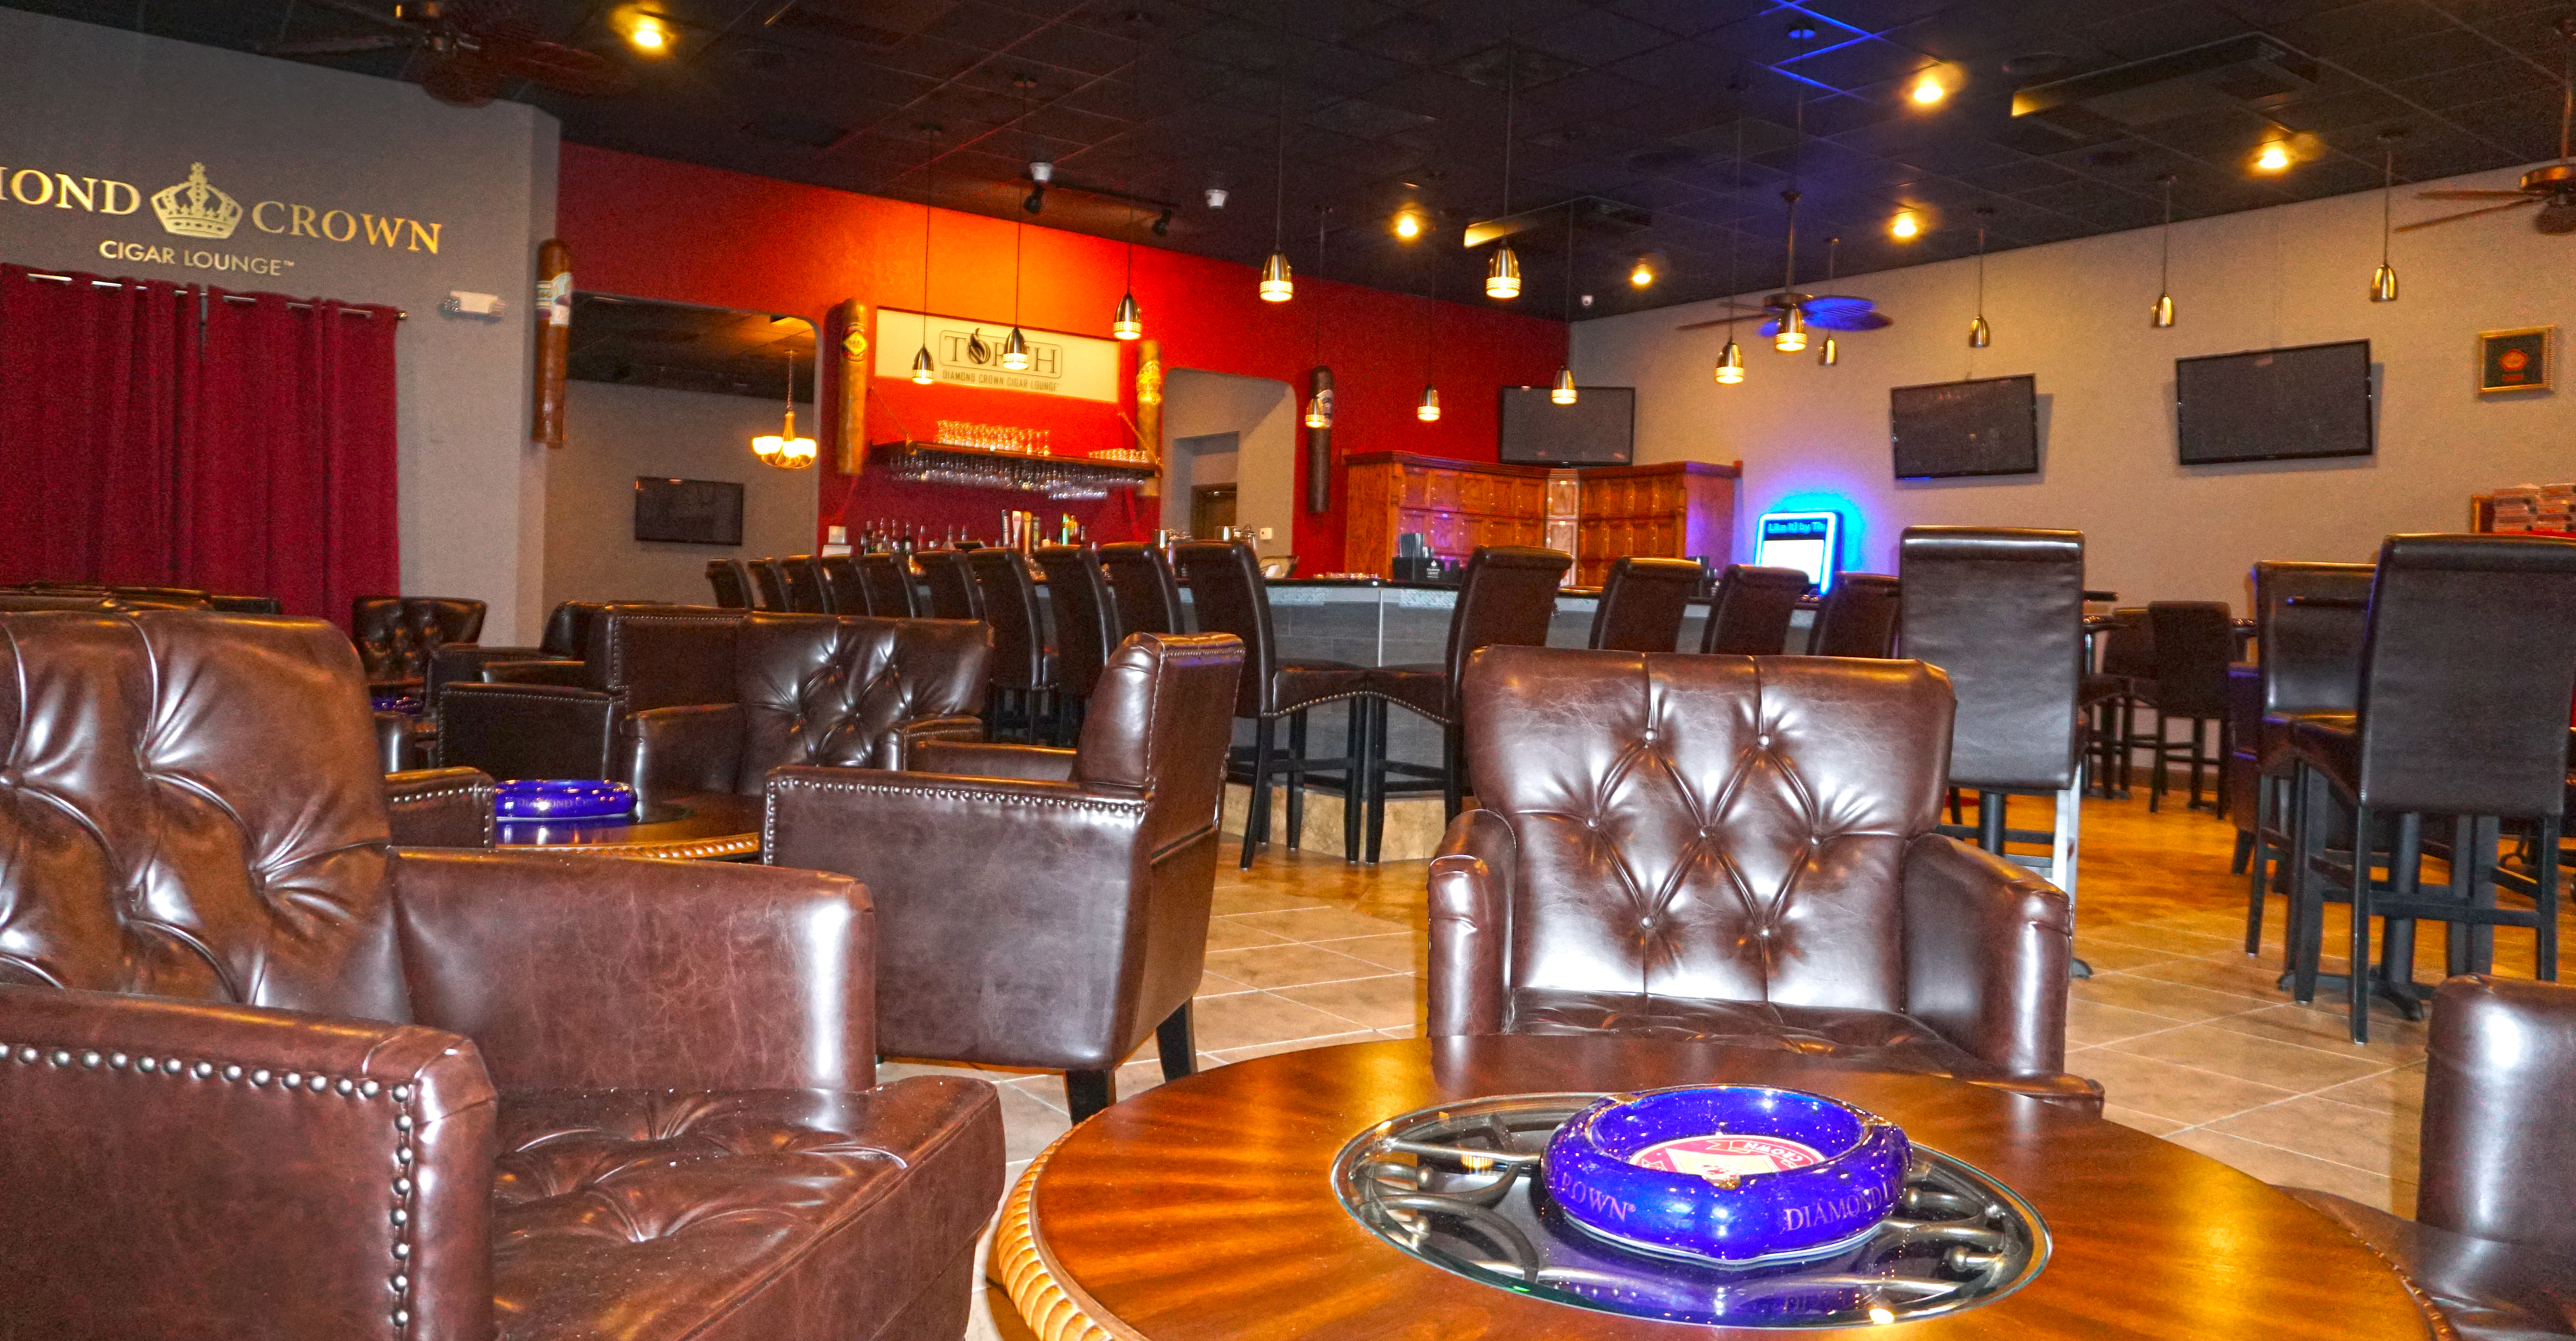 Torch Diamond Crown Cigar Lounge Carrollwood's New, Classy